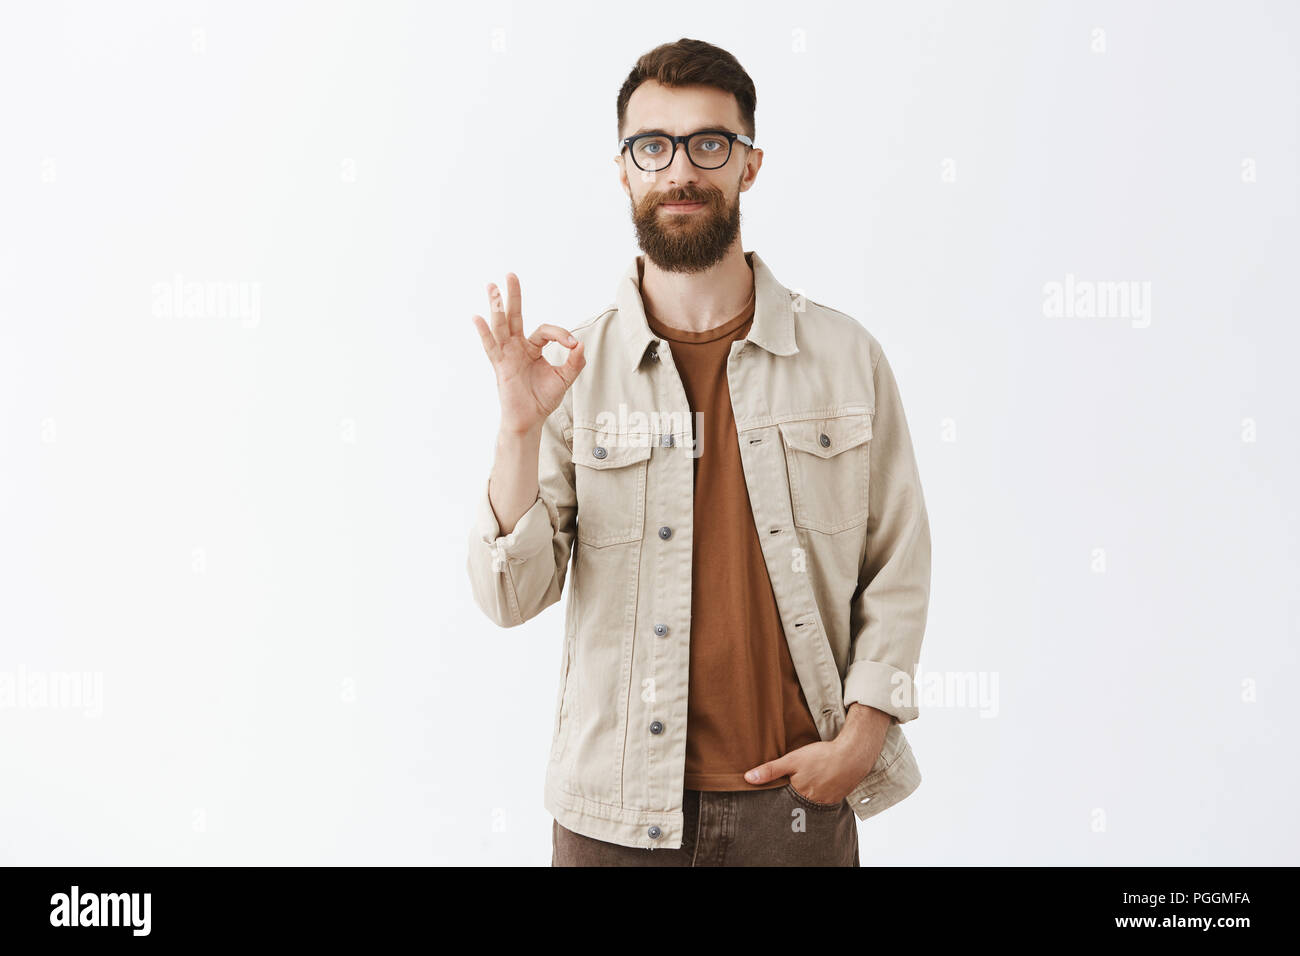 Calm friendly handsome caucasian guy with long beard and short hairstyle showing excellent or ok gesture with circled fingers smiling giving positive feedback or confirming plan fulfilled perfectly - Stock Image